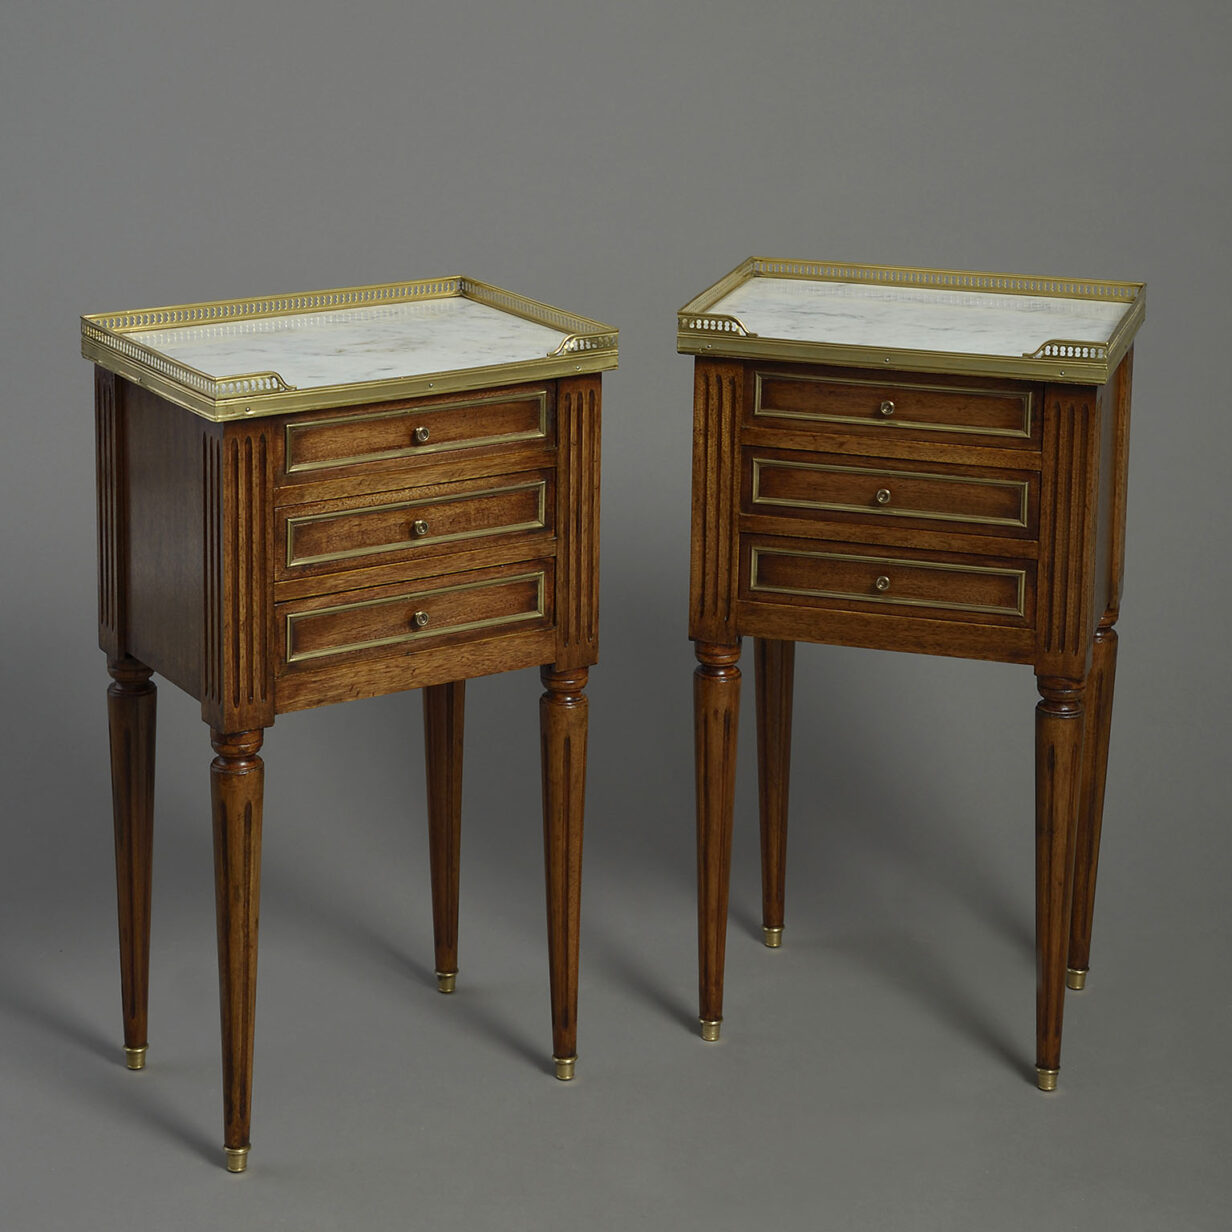 Pair of French Bedside Cabinets